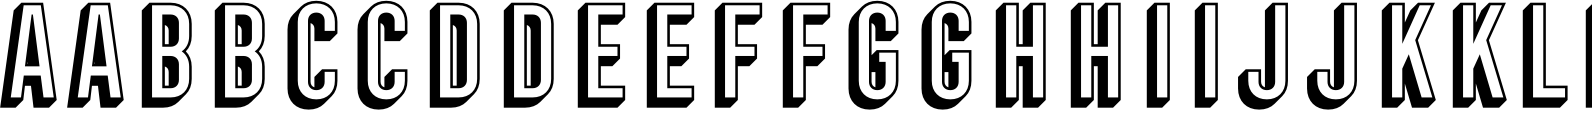 Frontage Condensed 3D Font